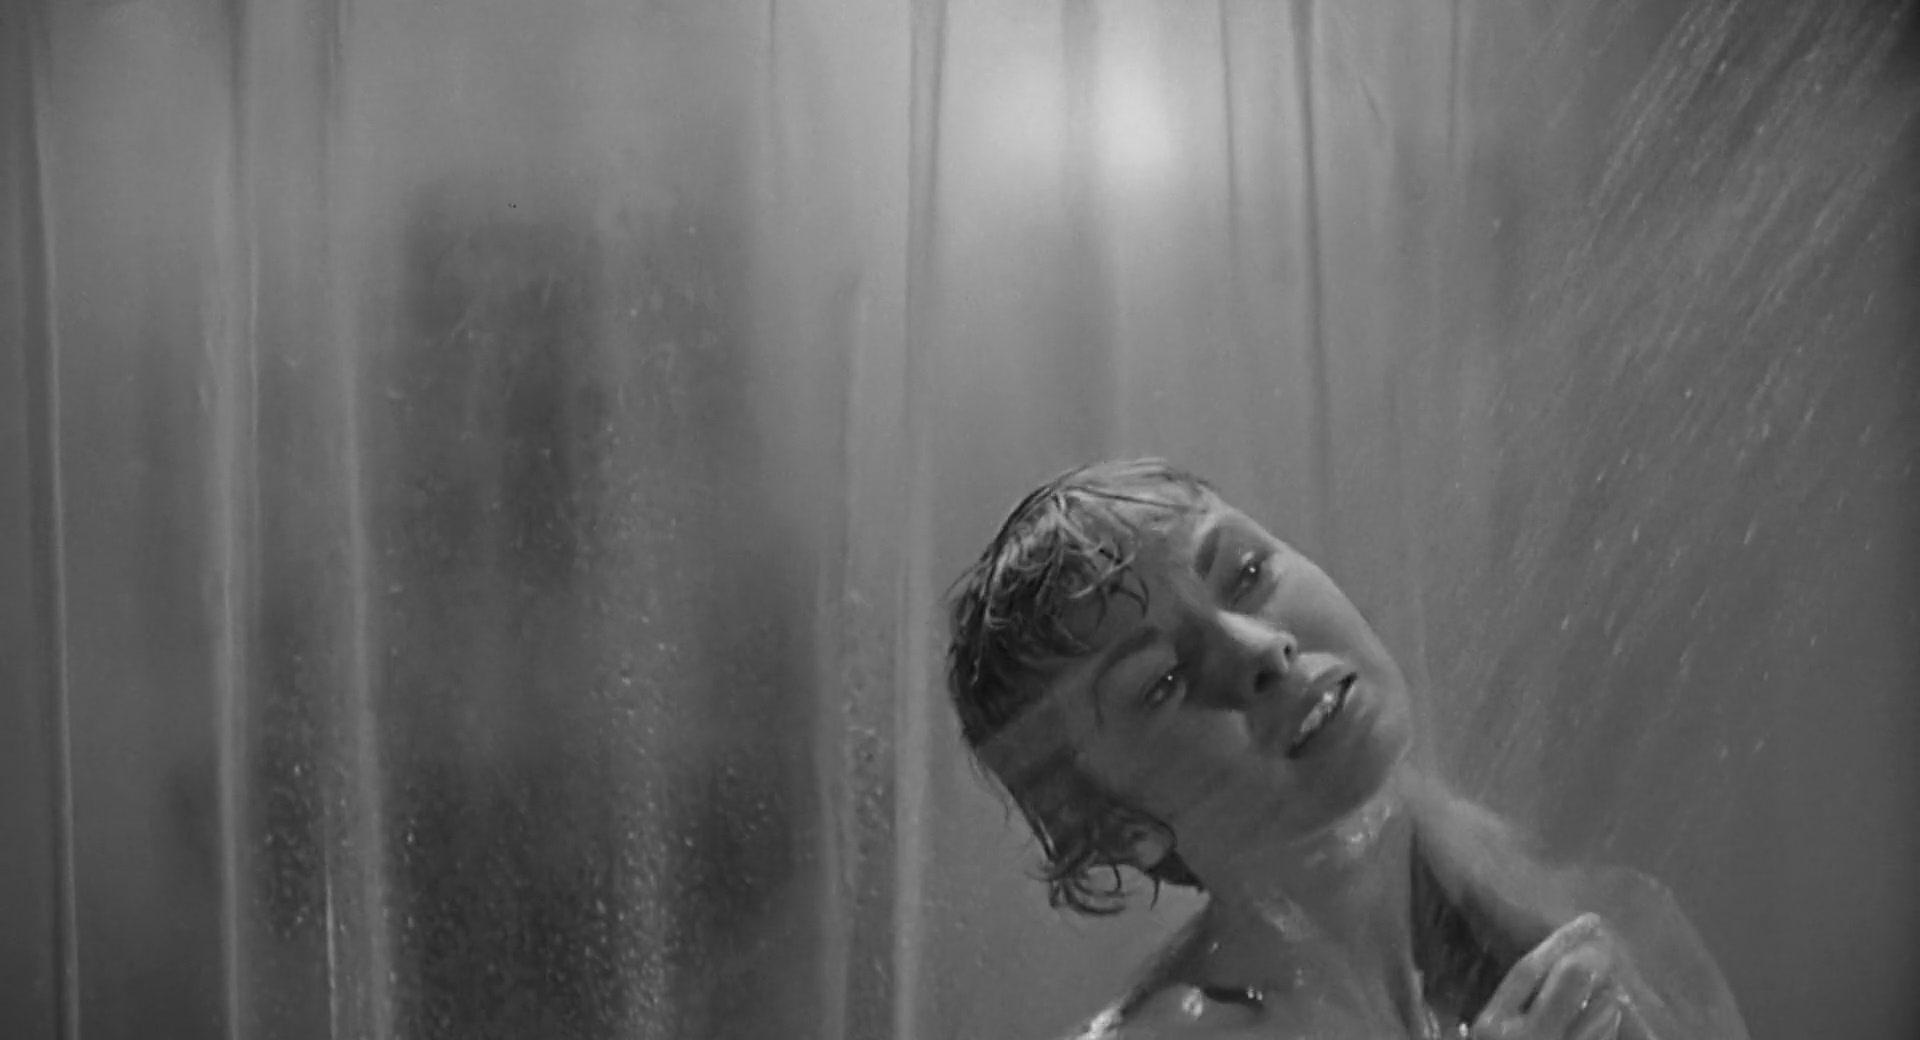 Psycho (1960) Wallpaper and Background Image | 1920x1040 | ID:667958 ...